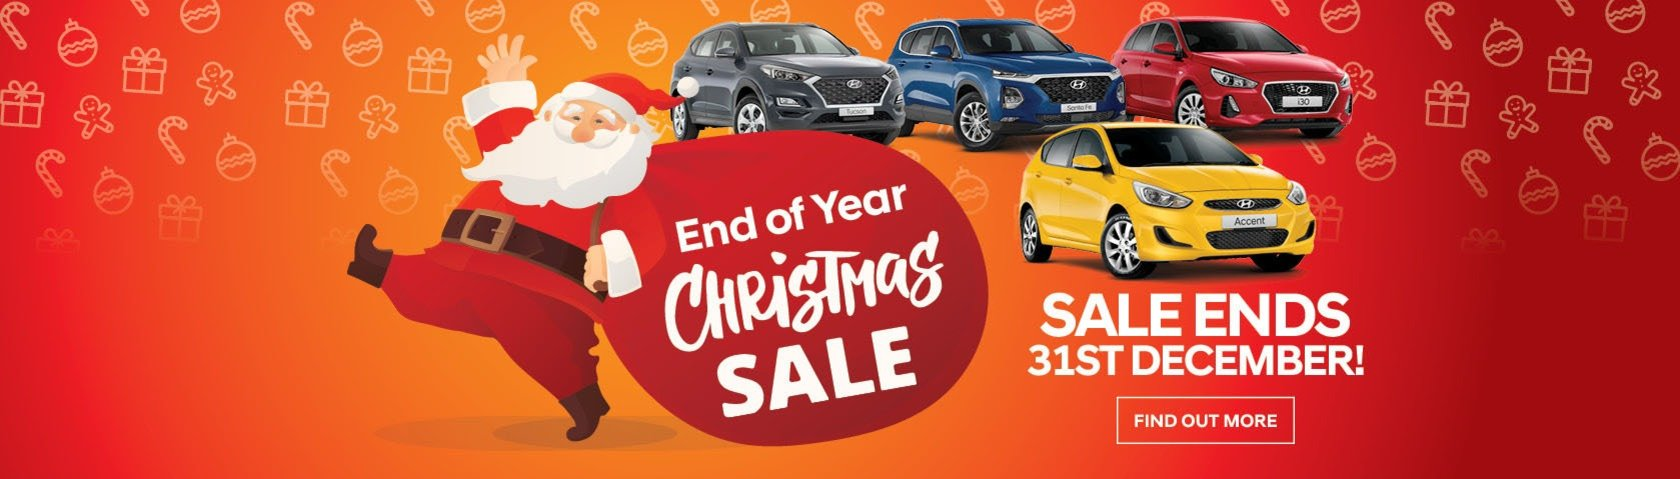 End of Year Christmas Sale